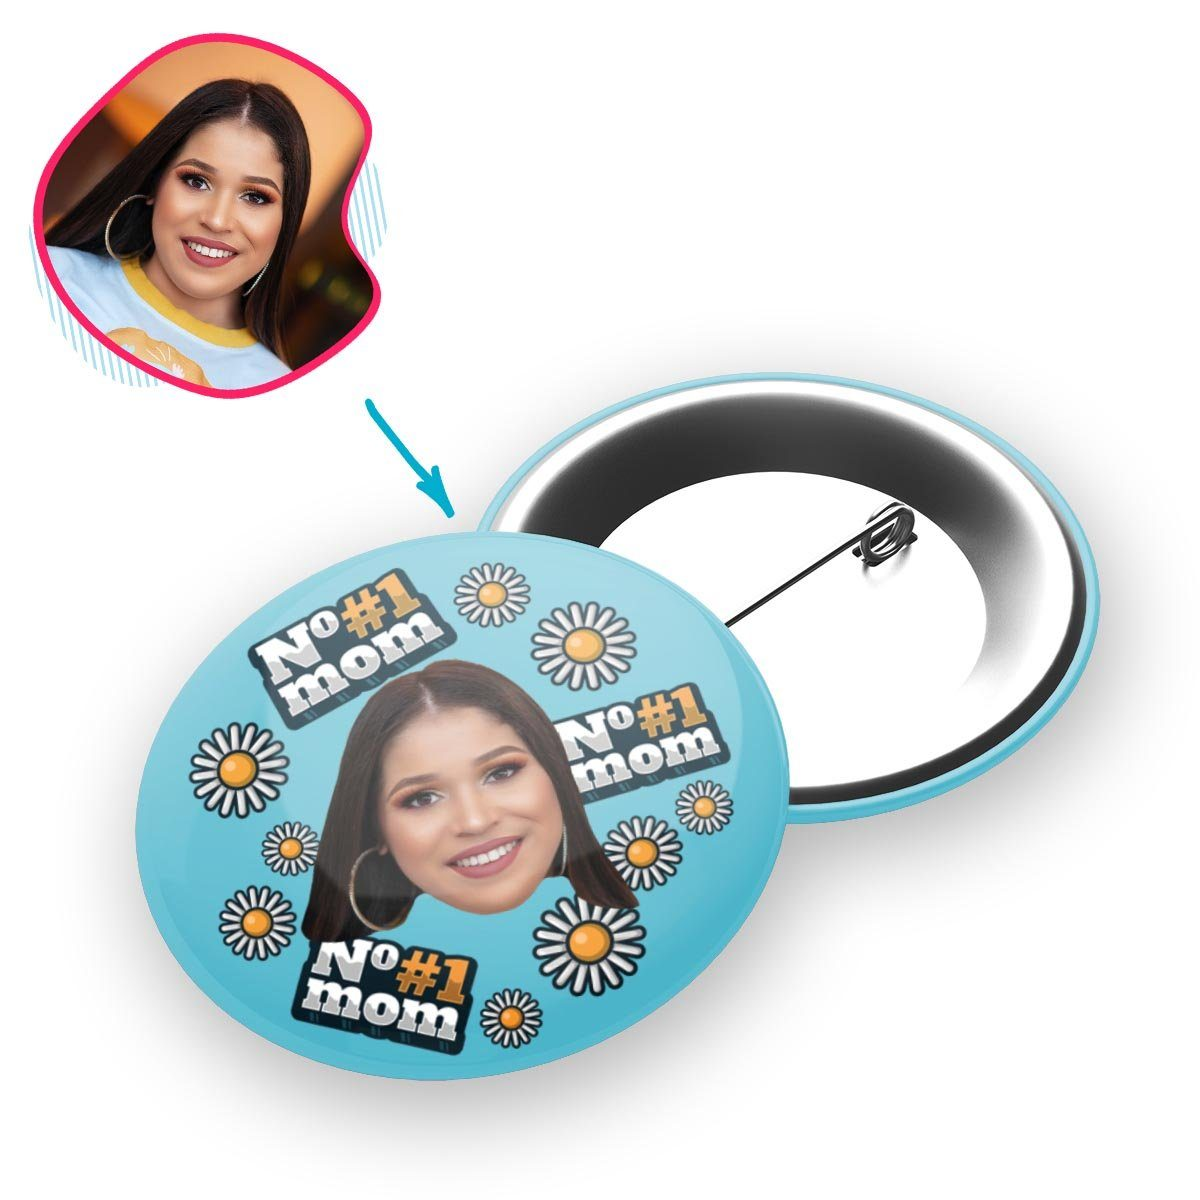 blue #1 Mom pin personalized with photo of face printed on it